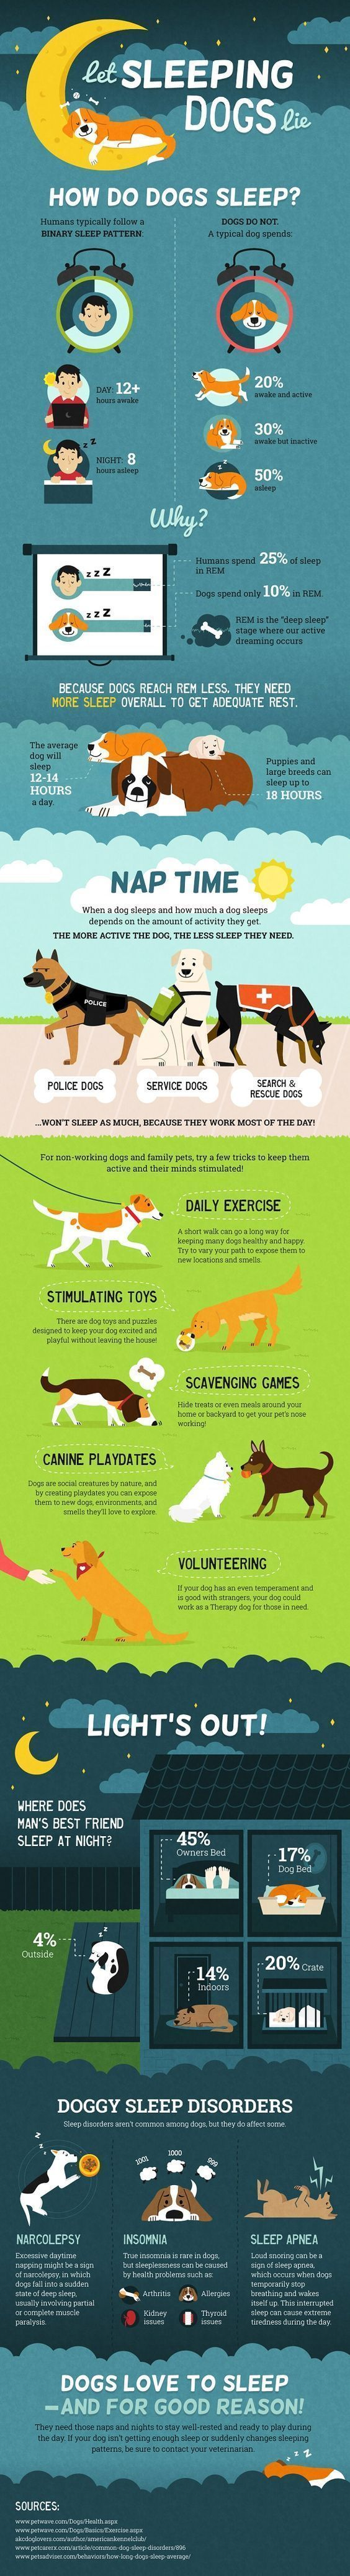 Dogs - Top Tips For Proper Care Of Your Dog >>> Be sure to check out this helpful article. #Dogs #doginfographic